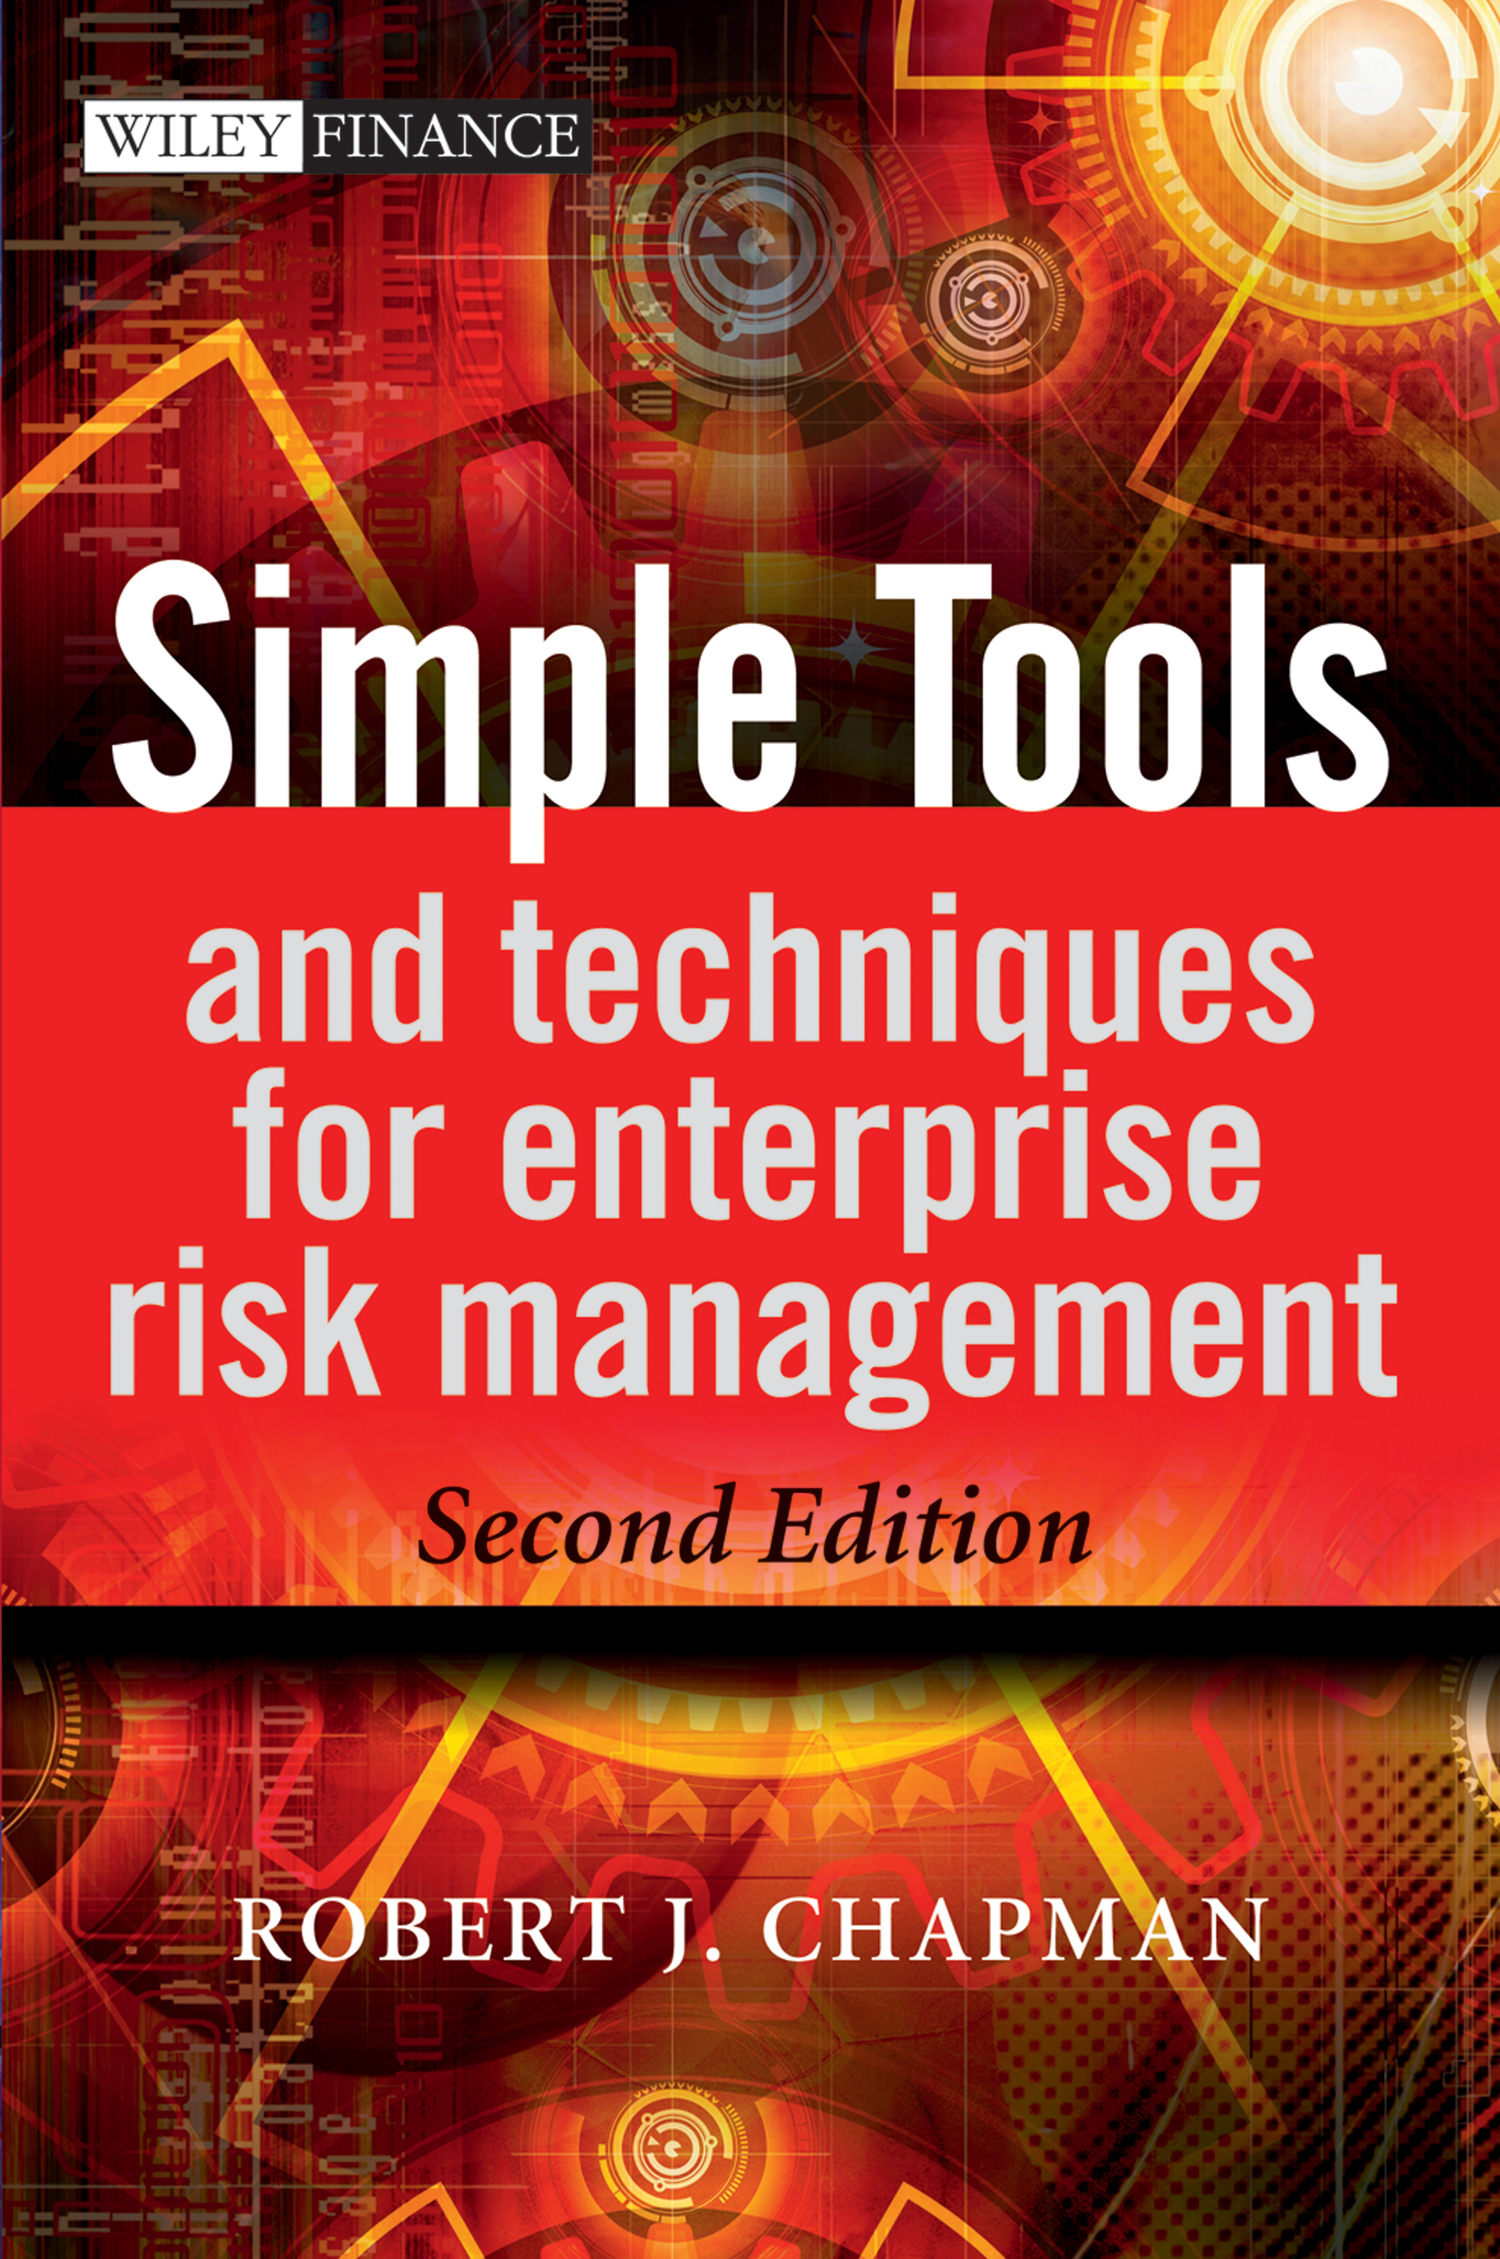 Robert Chapman J. Simple Tools and Techniques for Enterprise Risk Management minoli daniel information technology risk management in enterprise environments a review of industry practices and a practical guide to risk management teams